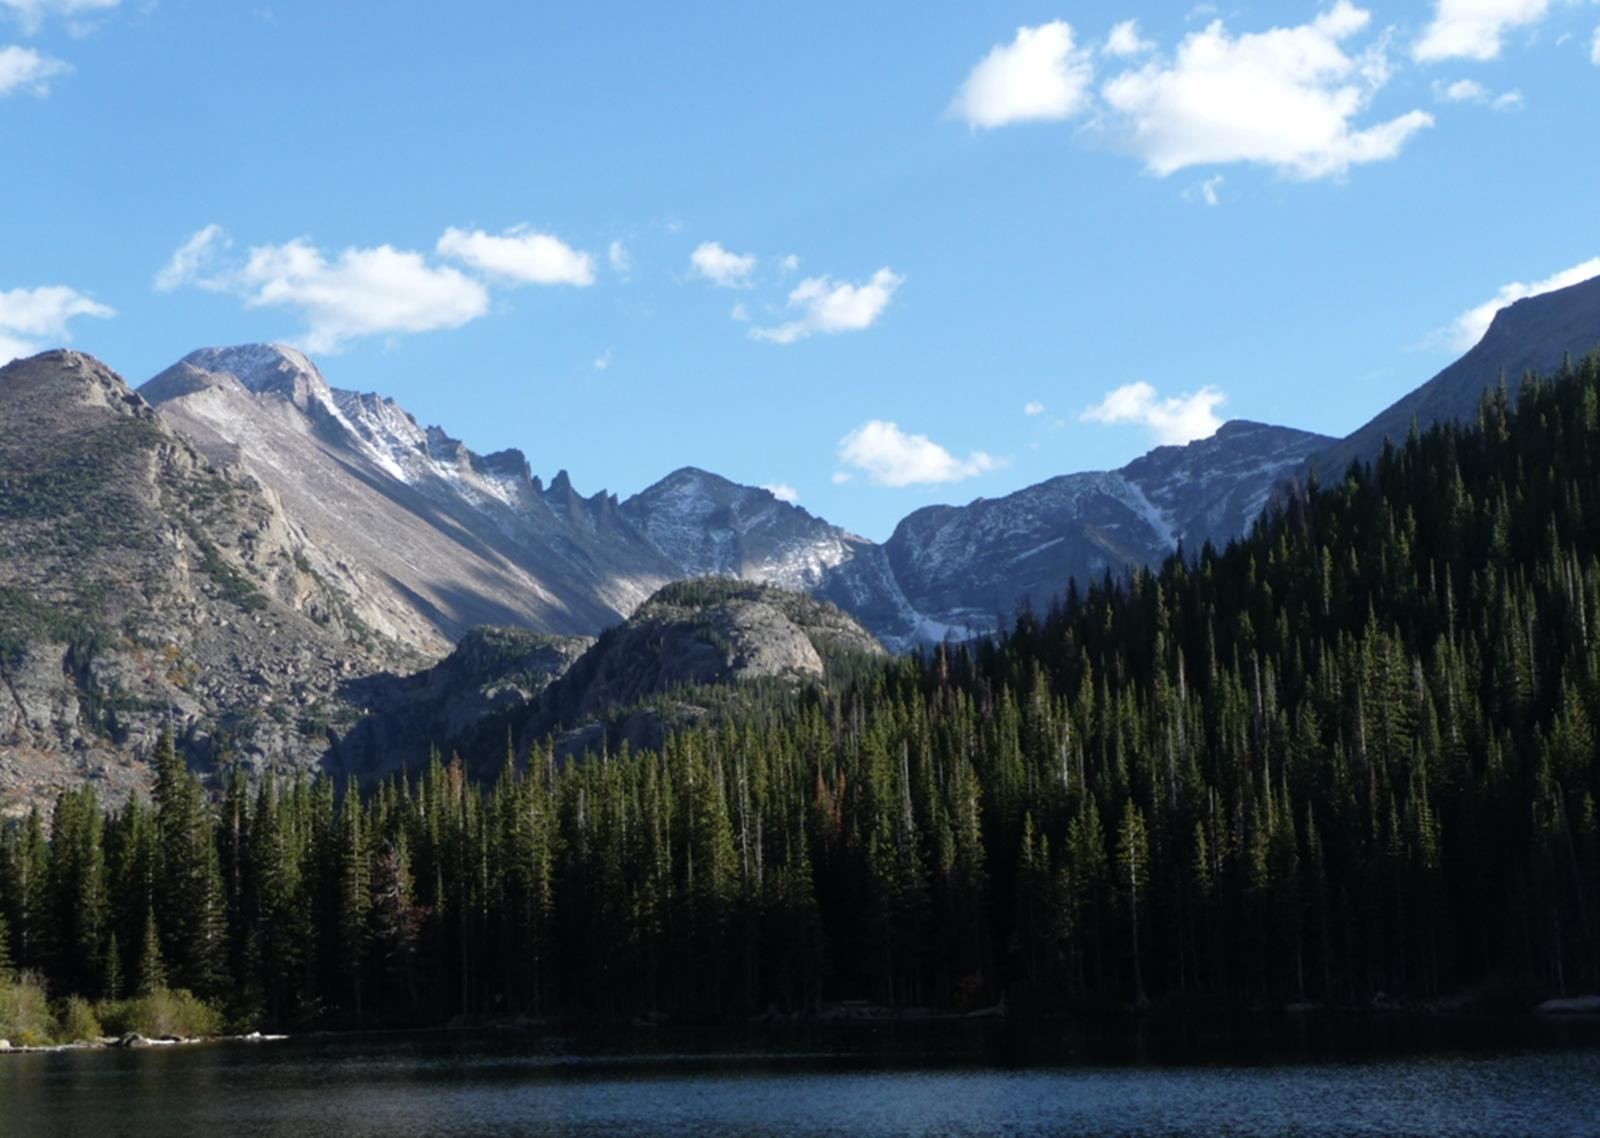 A view of the Rocky Mountains from Bear Lake. Credit: Daniel Mayer at en.wikipedia